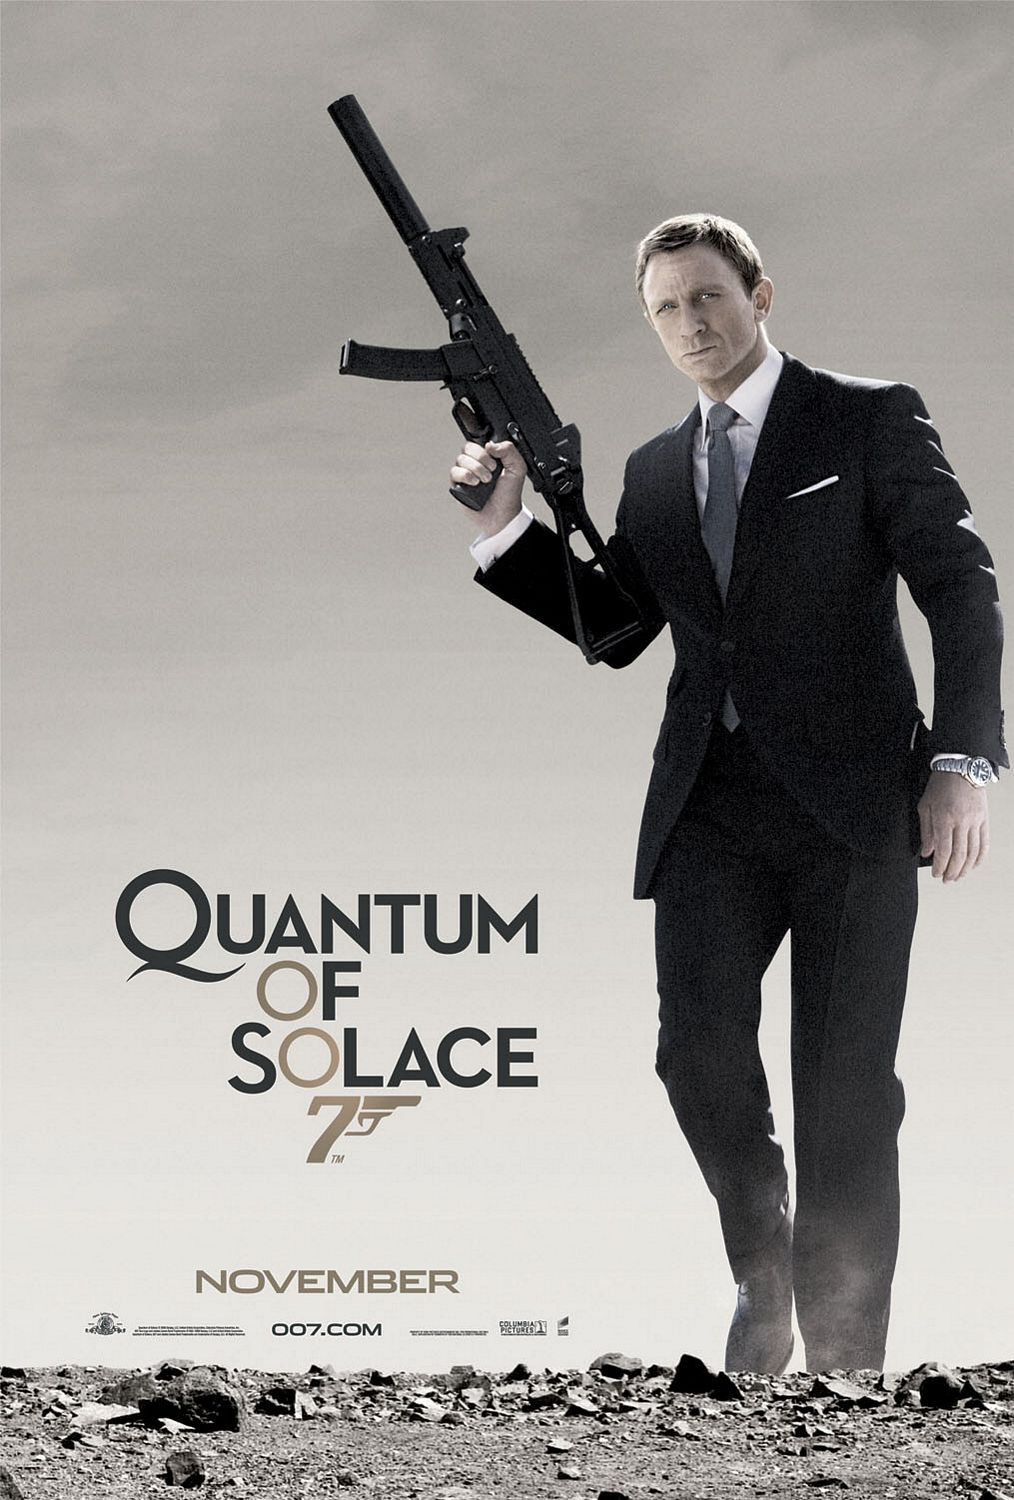 007 Quantum of Solace (2008)